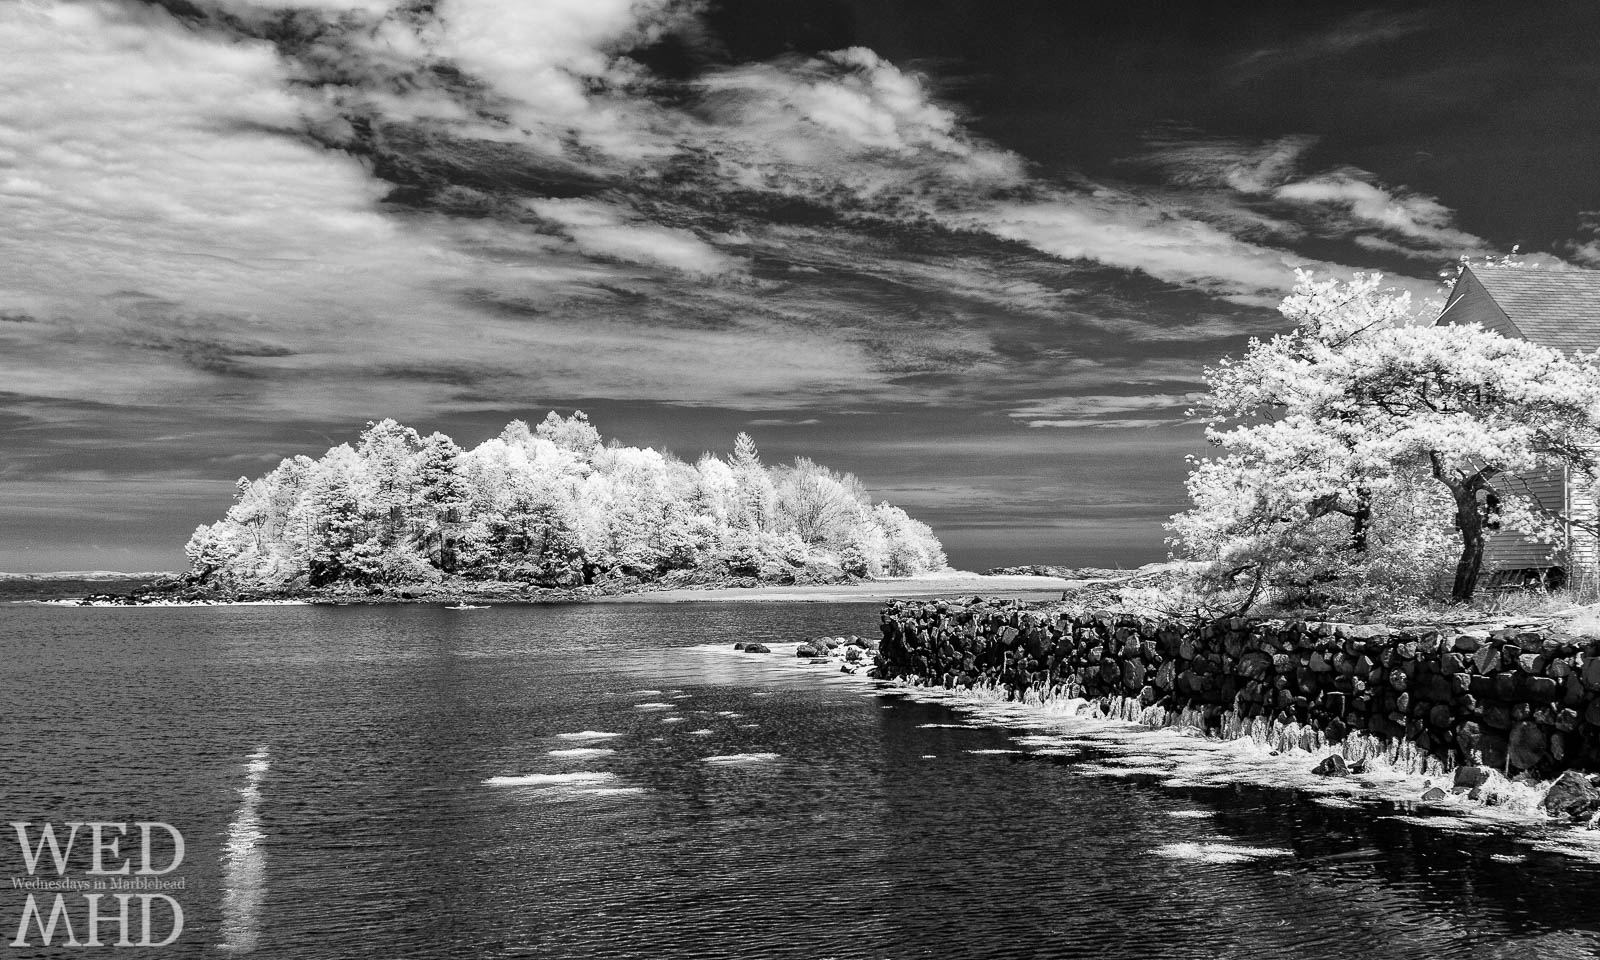 A black and white infrared image of Doliber's Cove sets the leaves aglow against a dark sky and ocean water